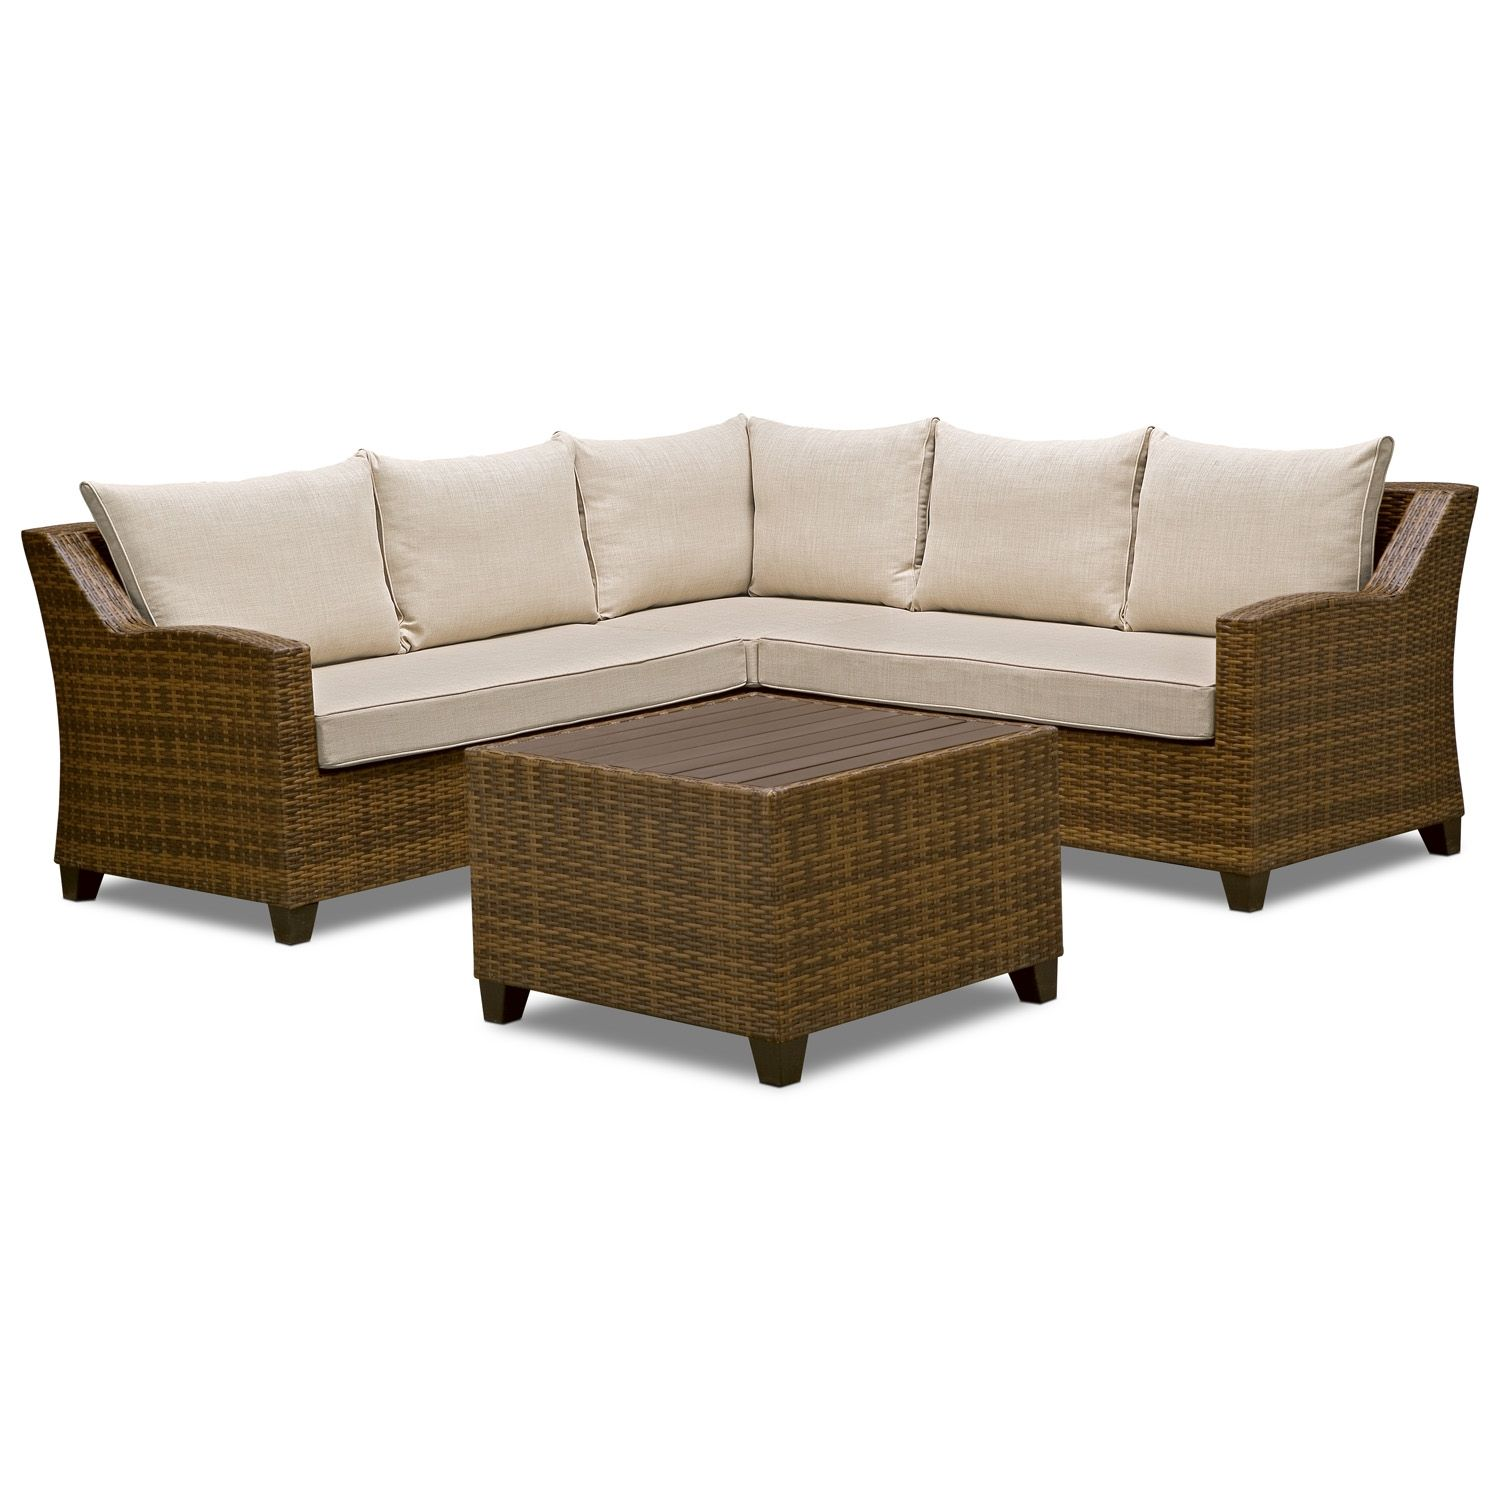 Woodfield Outdoor Furniture 3 Pc Patio Sectional And Cocktail Table Value City Furniture Furniture American Signature Furniture Value City Furniture